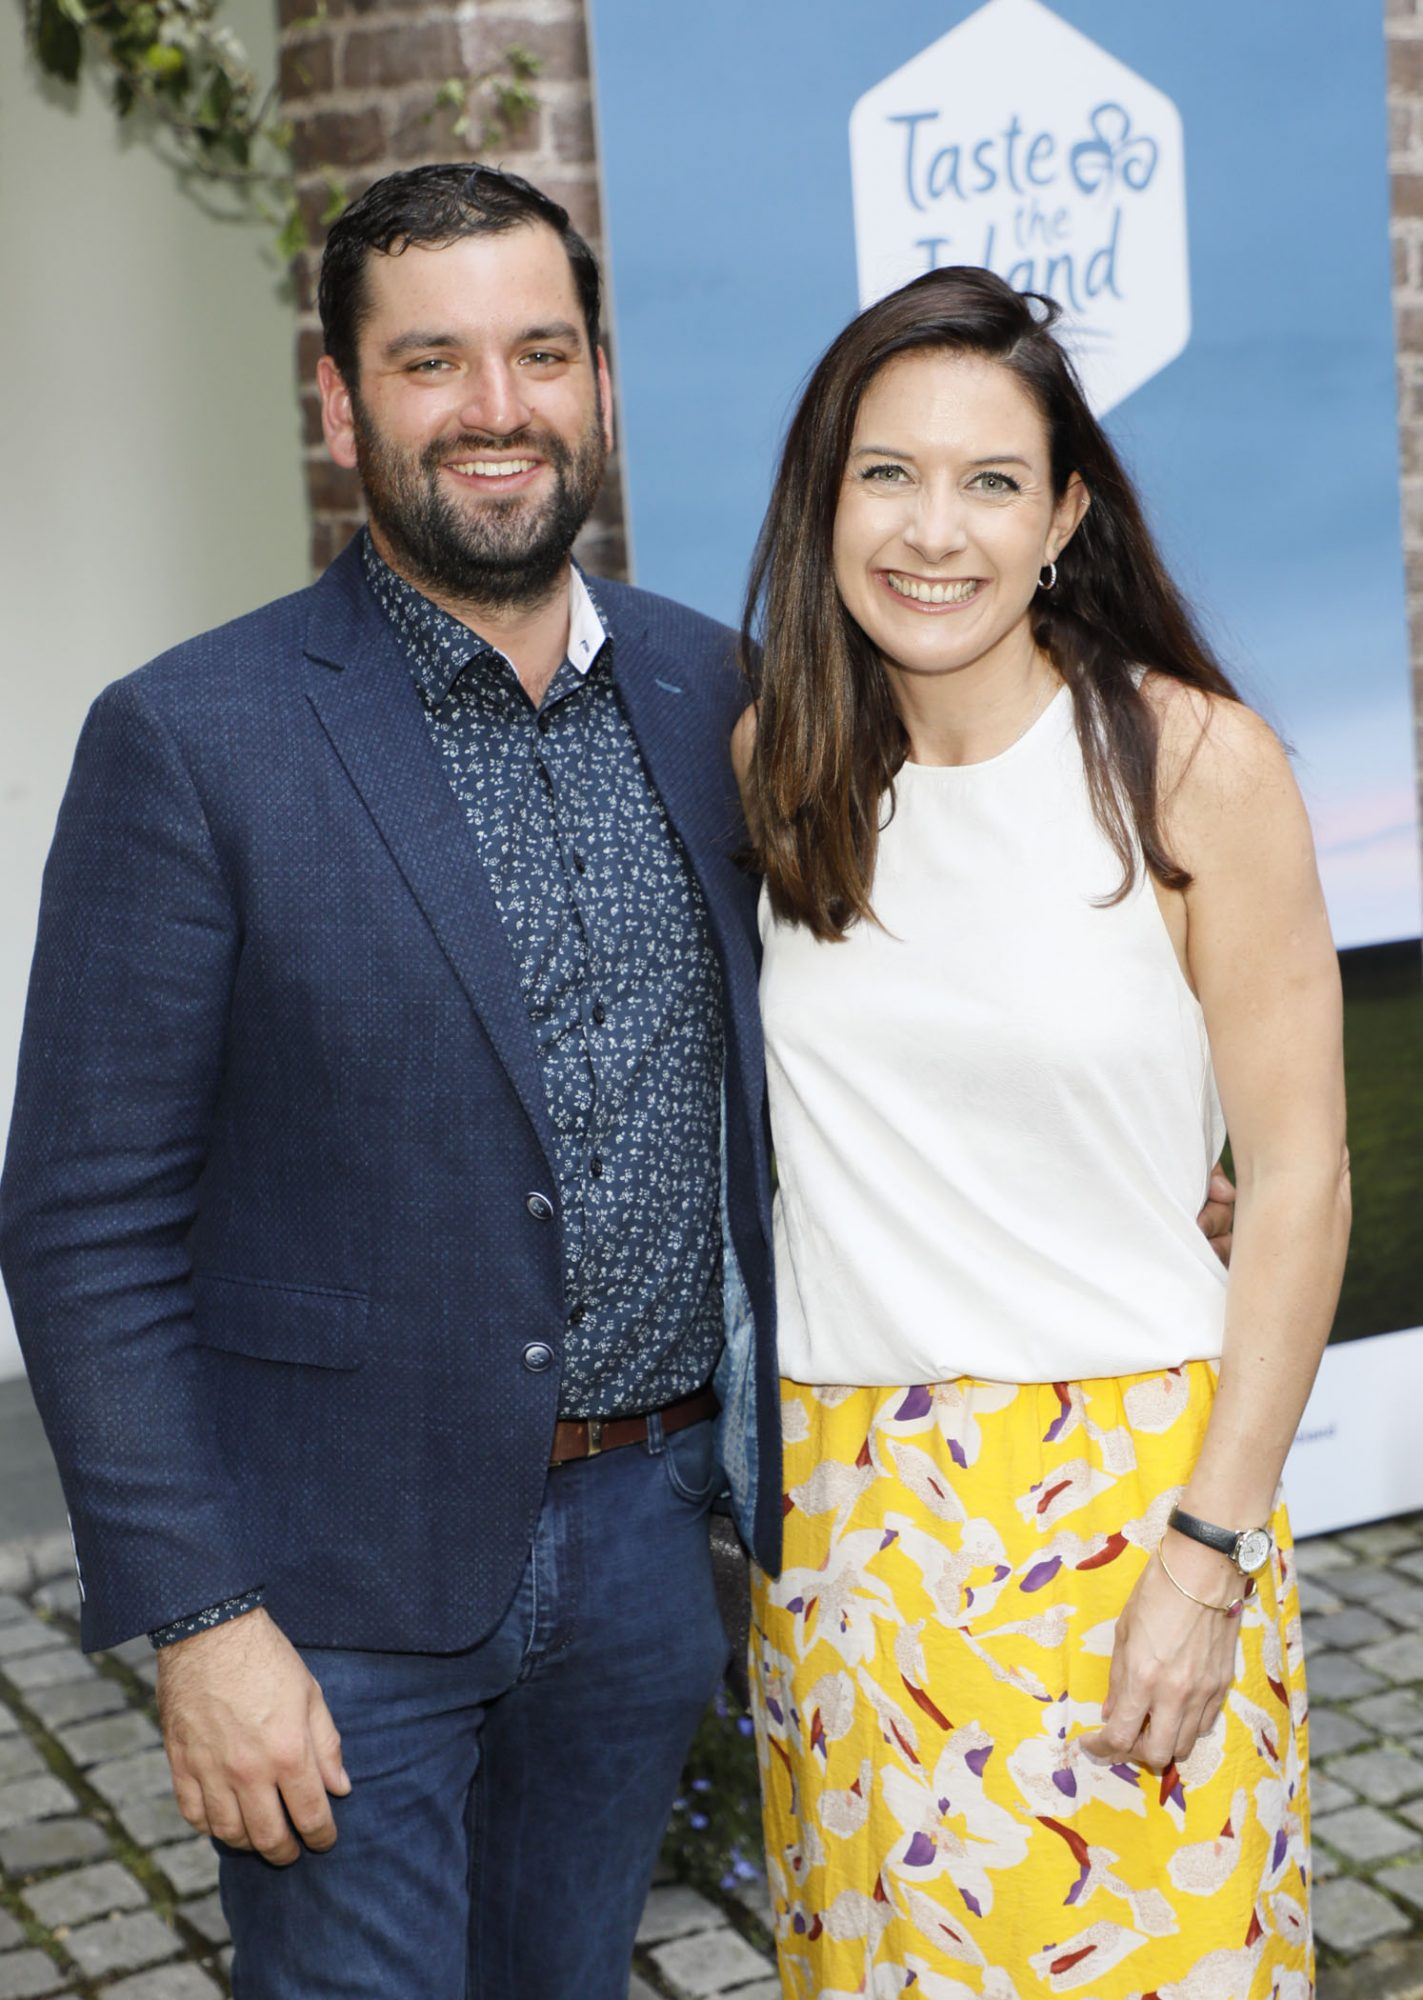 Thomas Maguire and Ruth Noble at the launch of Taste the Island, a 12 week celebration of Ireland's seasonal ingredients, adventurous tastes and bold experiences taking place this September, October and November. Photo: Kieran Harnett